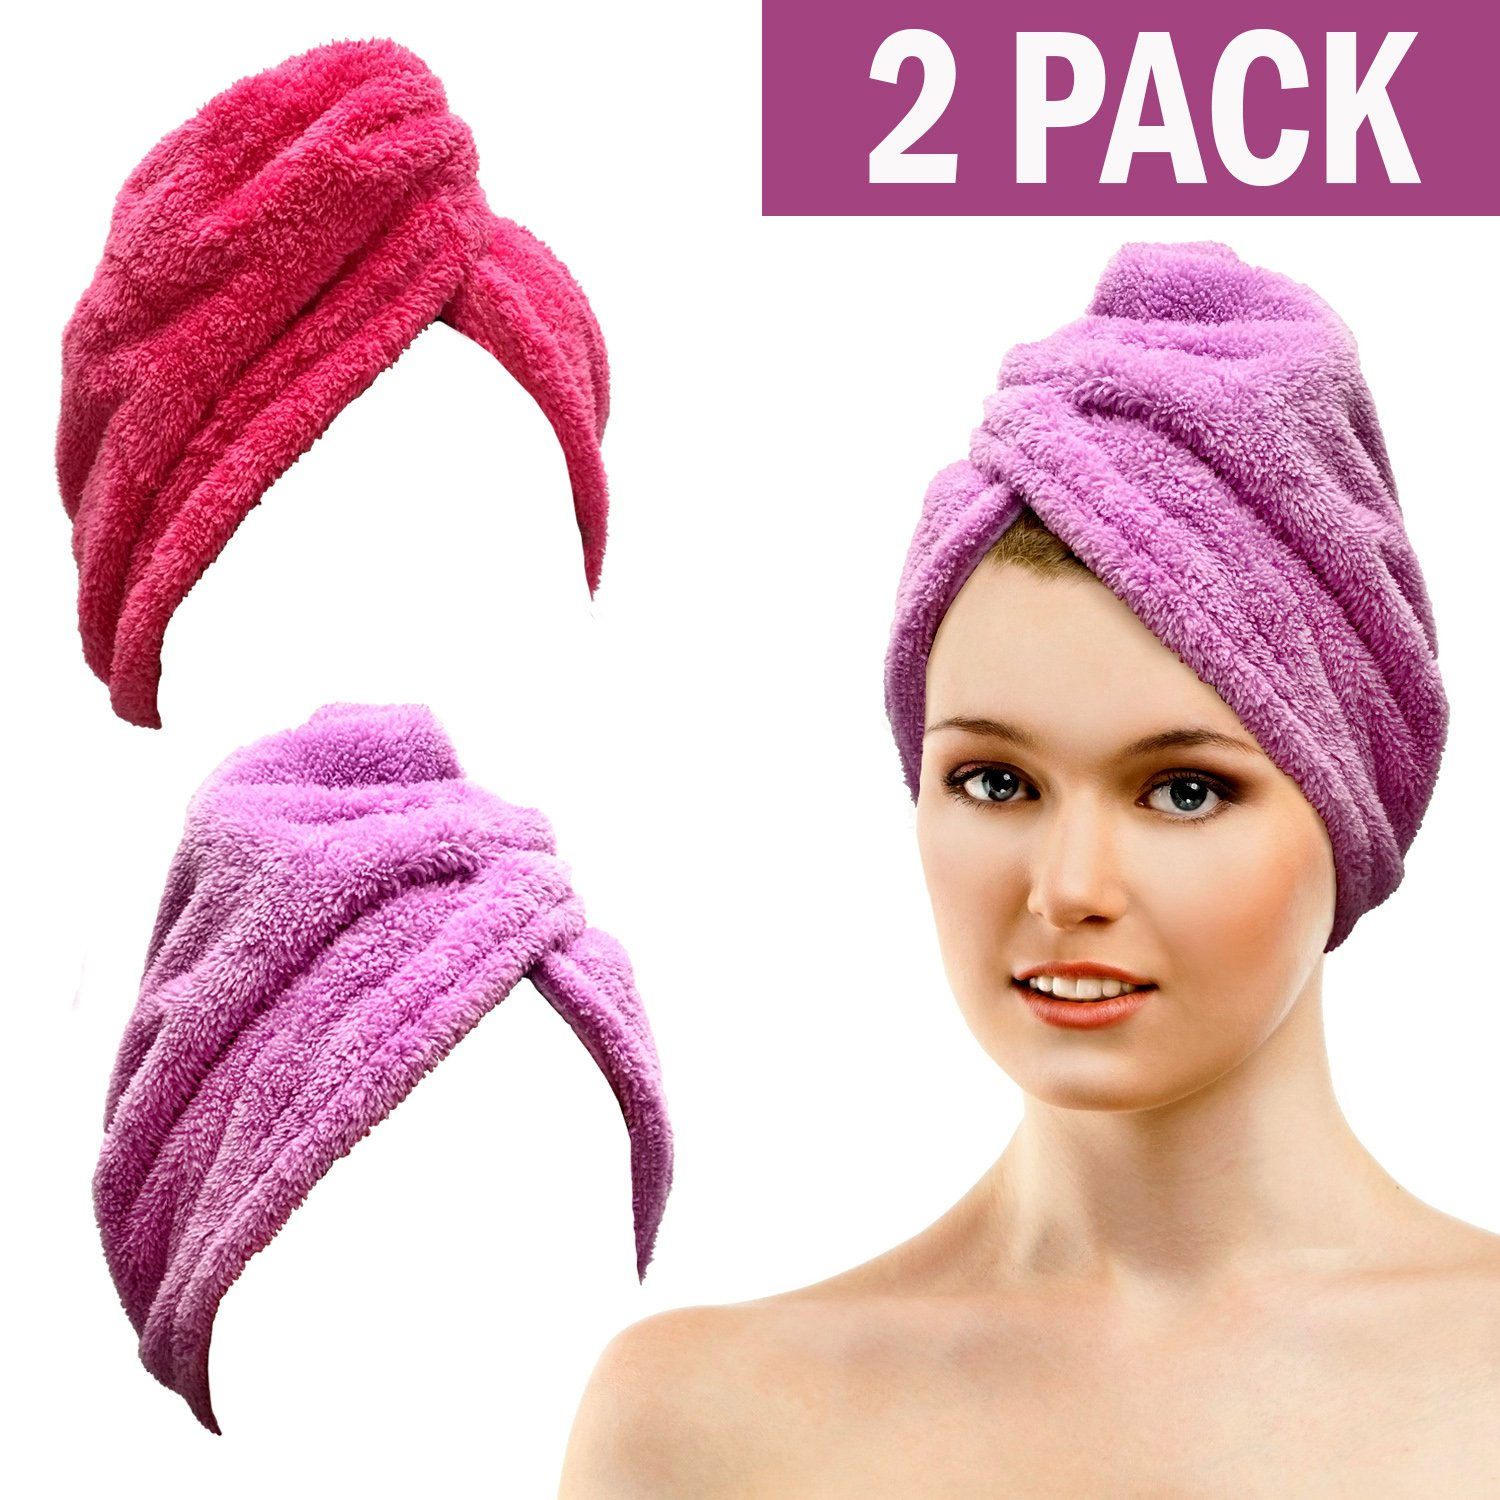 Bath Blossom Microfiber Hair Towel Wrap - Fast Drying Head Wraps Turban Shower Cap Style (2 Pack) For Women and Children